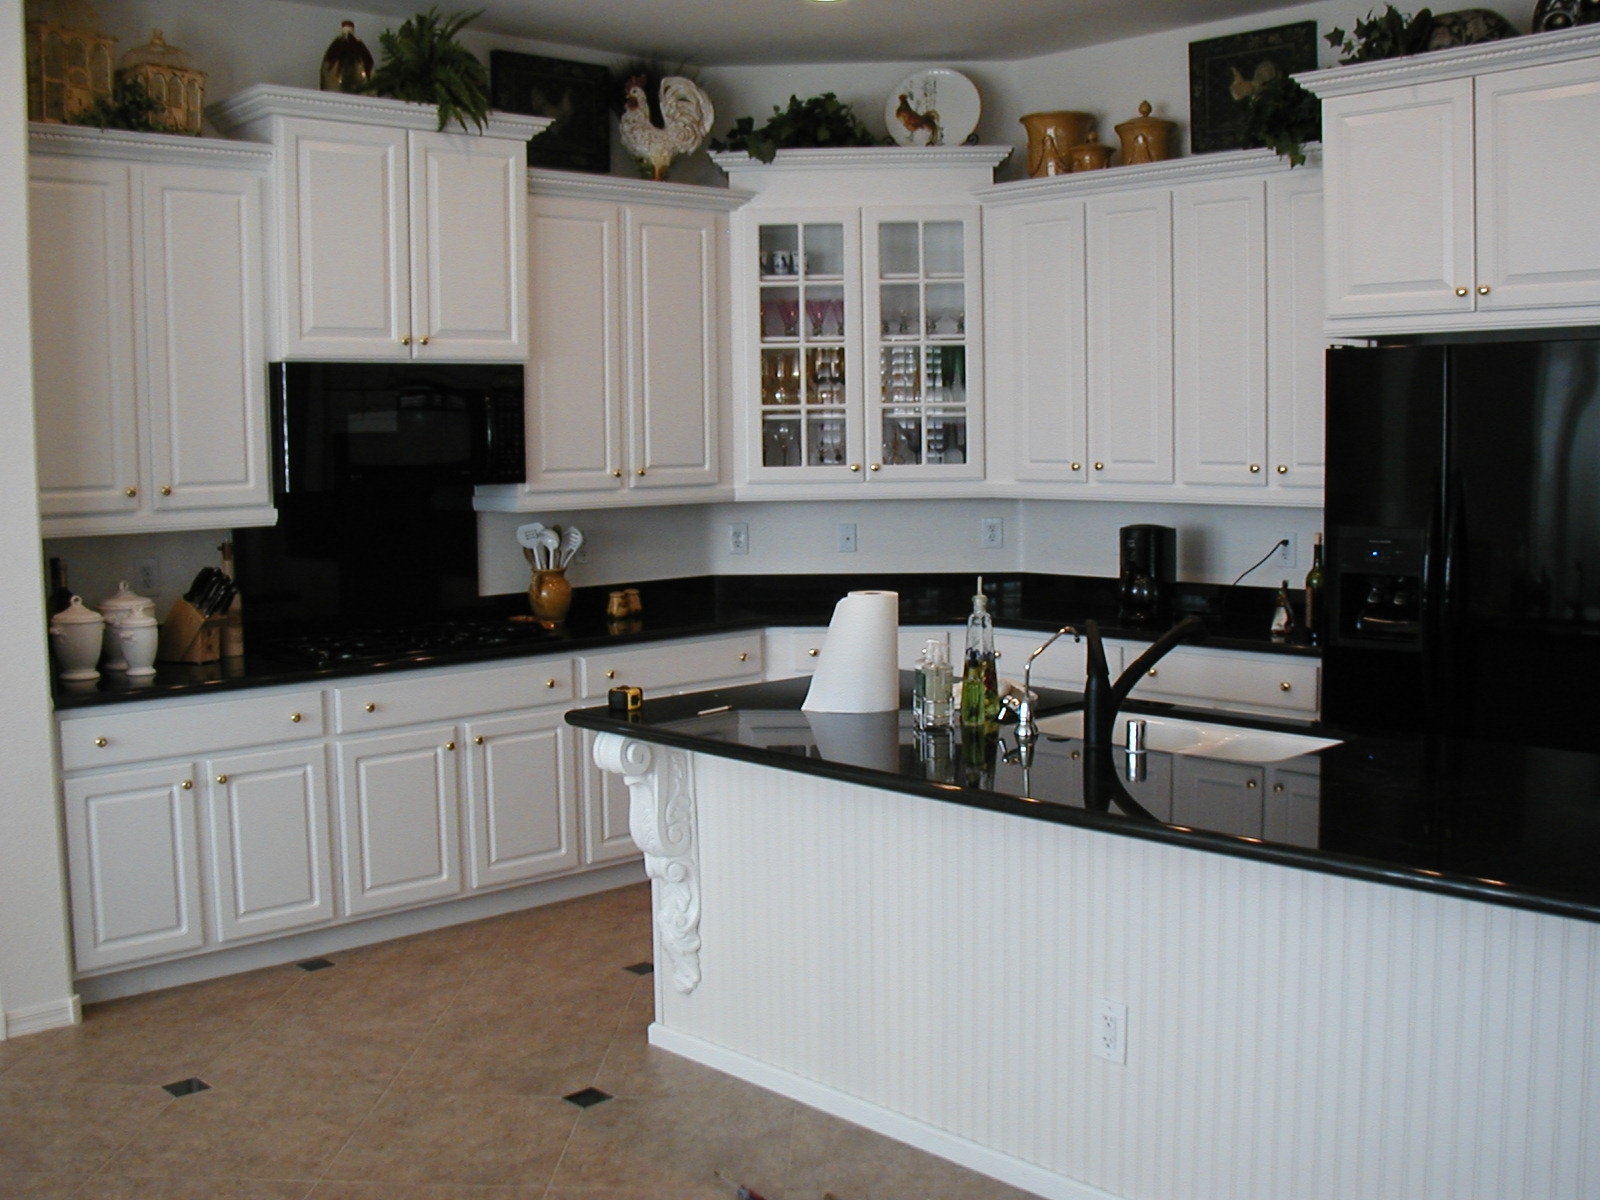 Hmh designs white kitchen cabinets timeless and transcendent for Kitchens with black appliances